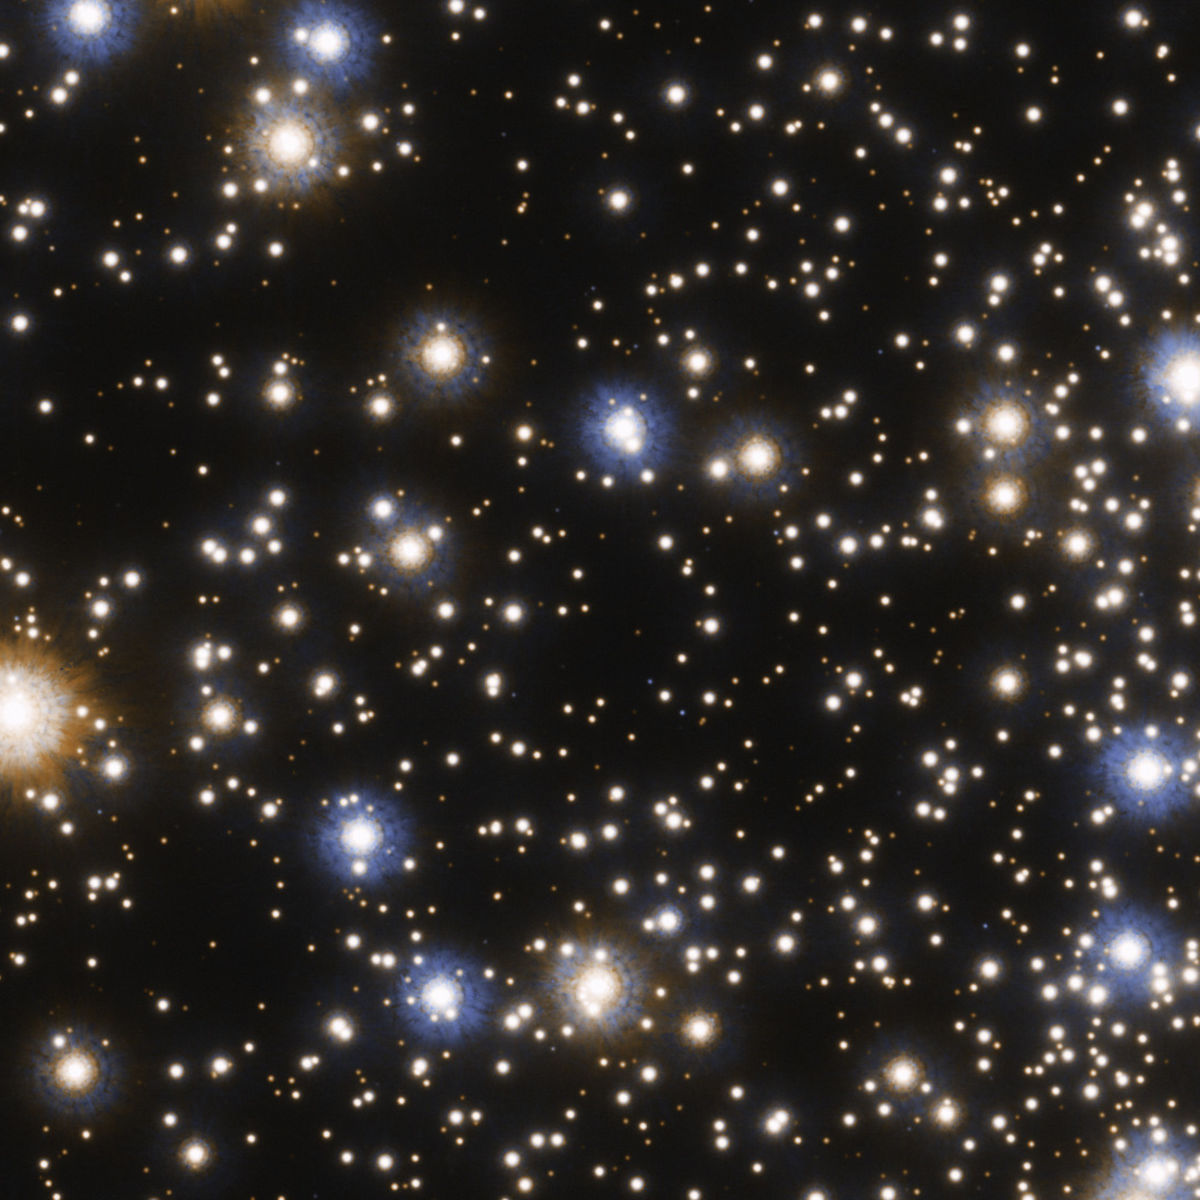 The center of the globular cluster NGC 6397 is a spectacular assortment of hundreds of thousands of stars. Credit: NASA, ESA, and T. Brown and S. Casertano (STScI)  Acknowledgement: NASA, ESA, and J. Anderson (STScI)